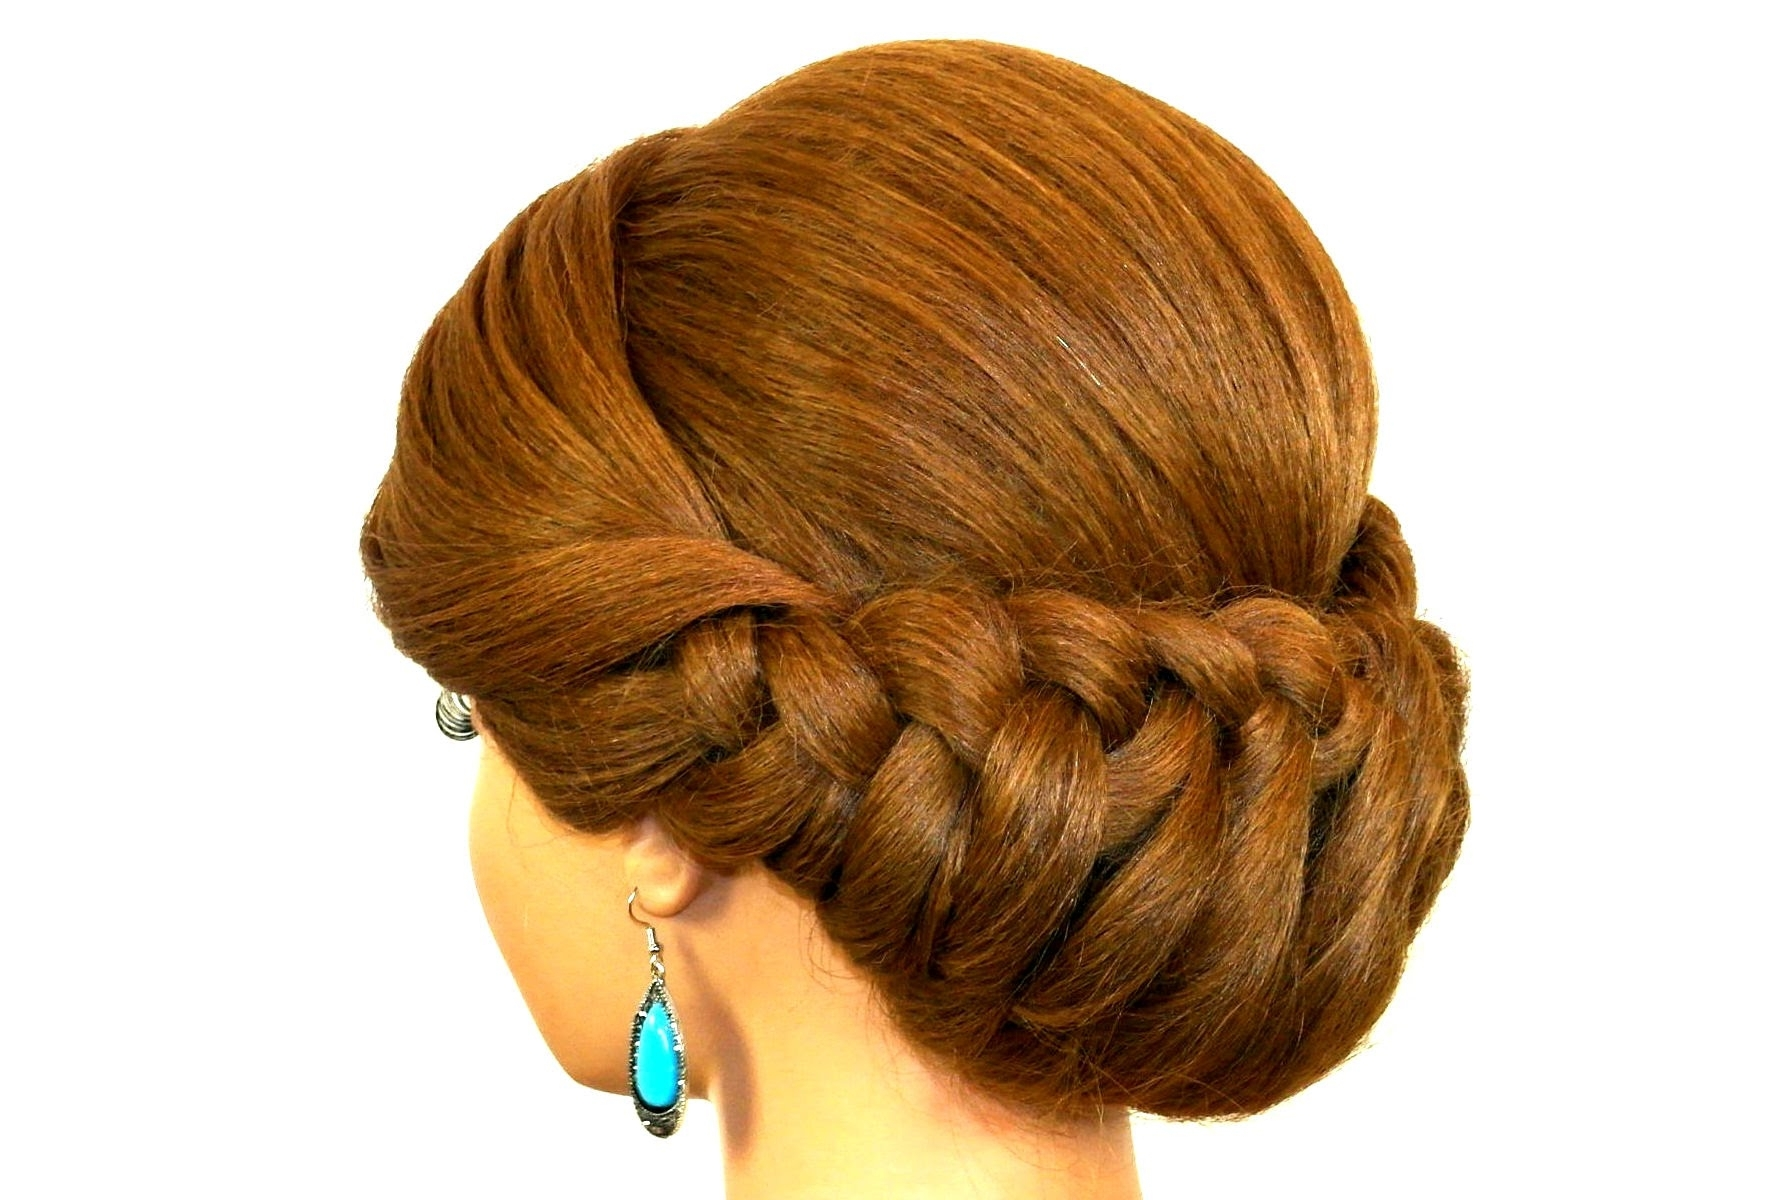 Braided Updo Hairstyle For Medium Long Hair Tutorial – Youtube Pertaining To Braid Updo Hairstyles For Long Hair (View 7 of 15)